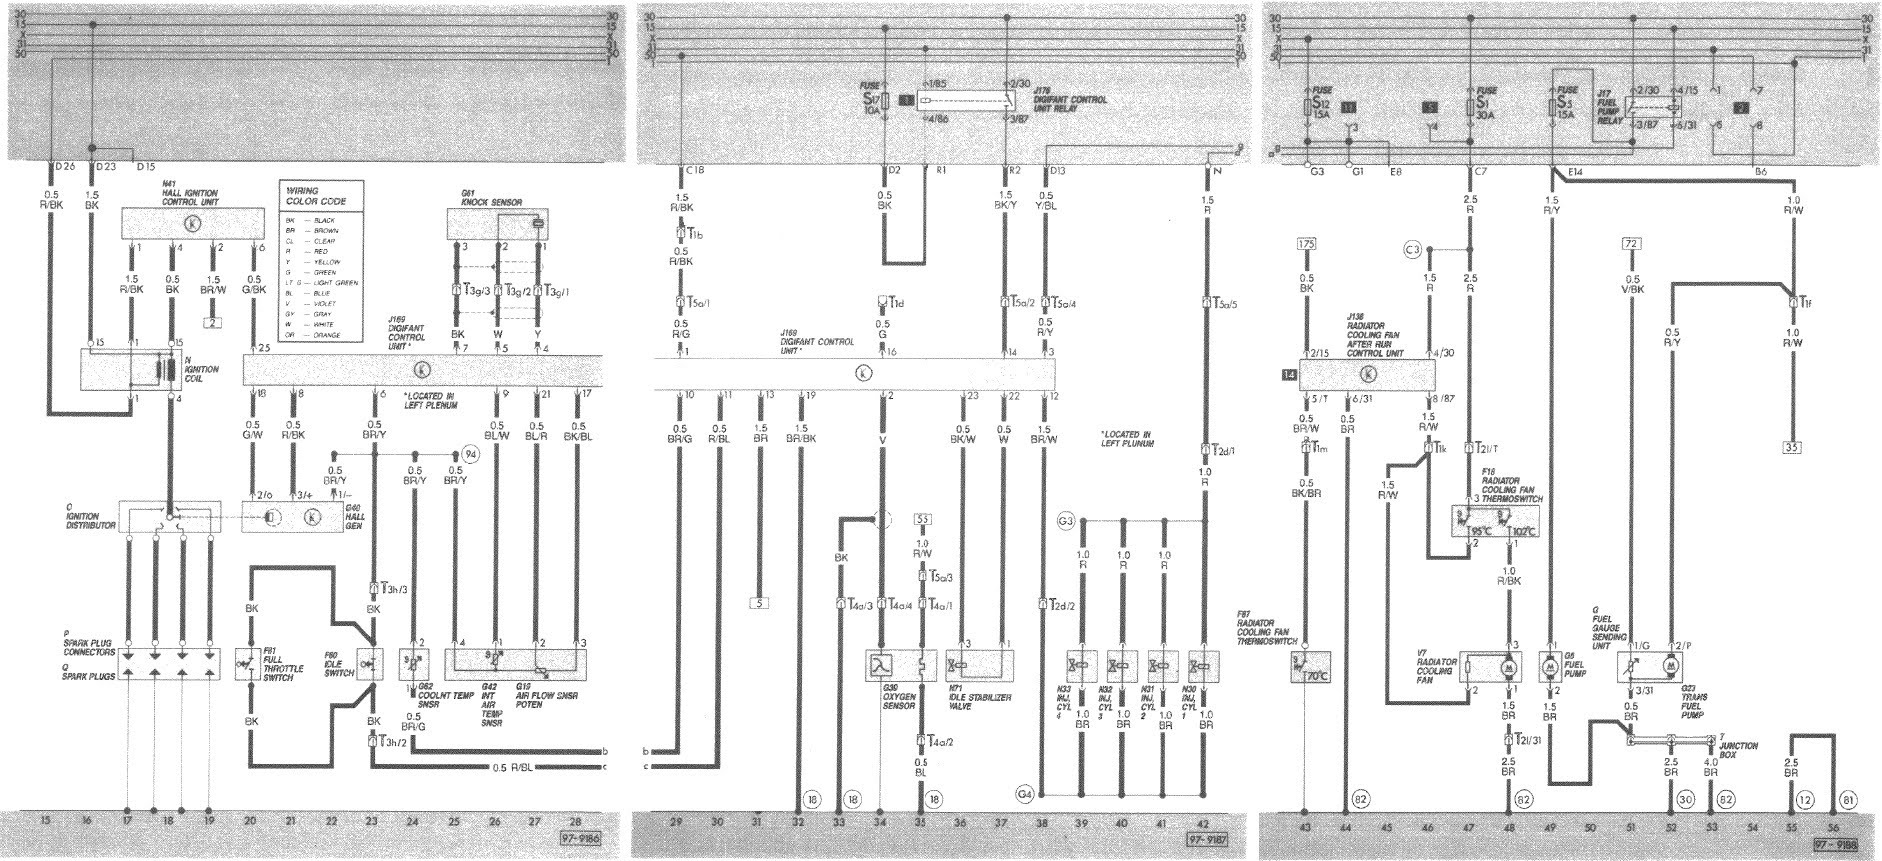 vw caddy wiring diagram wiring diagram and schematic design 2004 vw volkswagen caddy outside light control wiring diagram